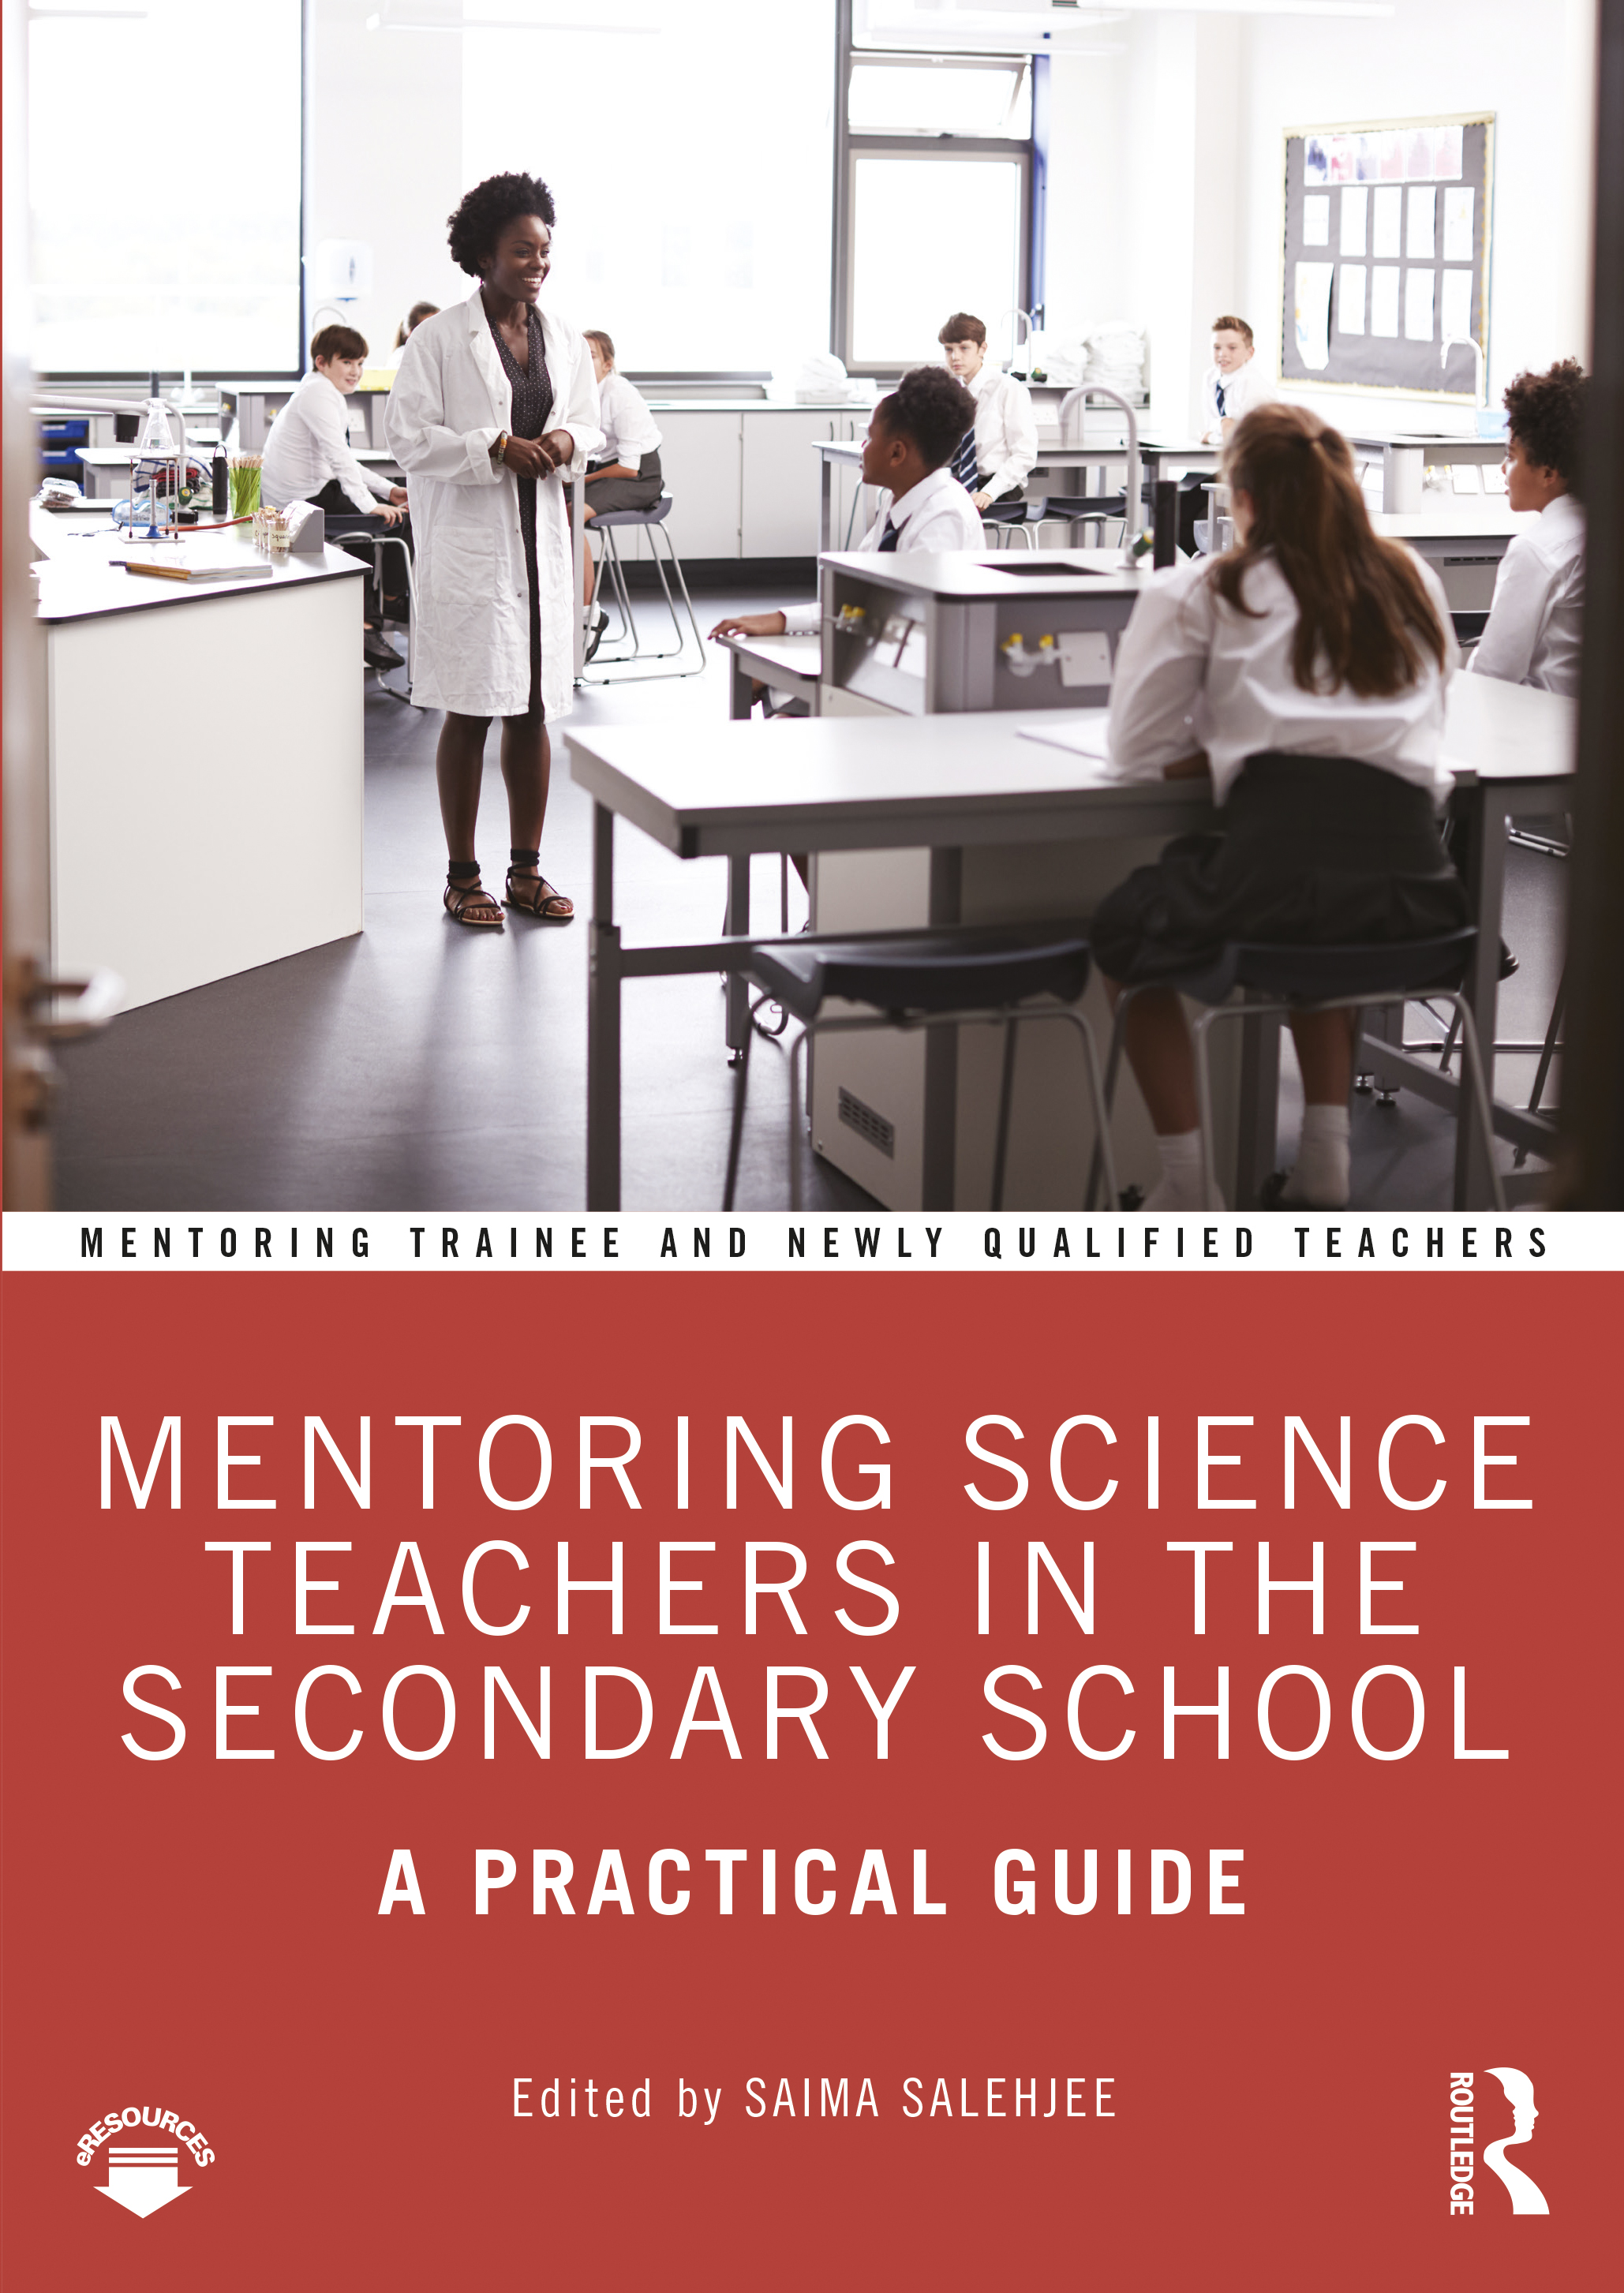 Mentoring Science Teachers in the Secondary School